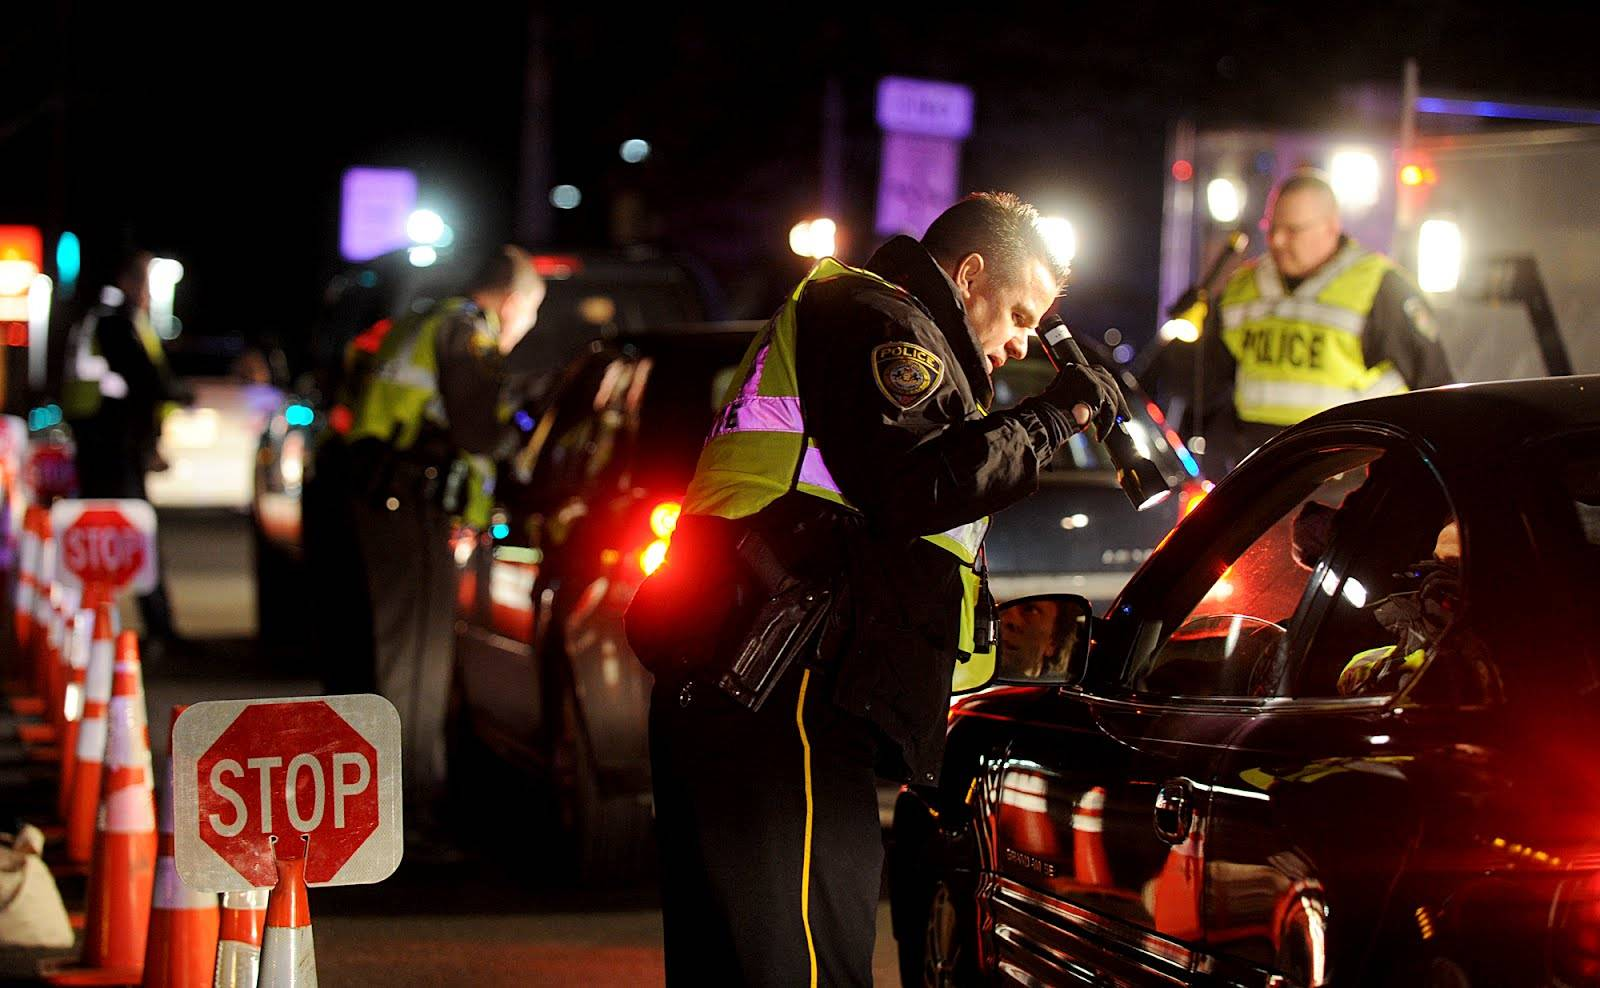 Arrested at a DUI Checkpoint? Get excellent DUI Defense with Chavers & Guhl!